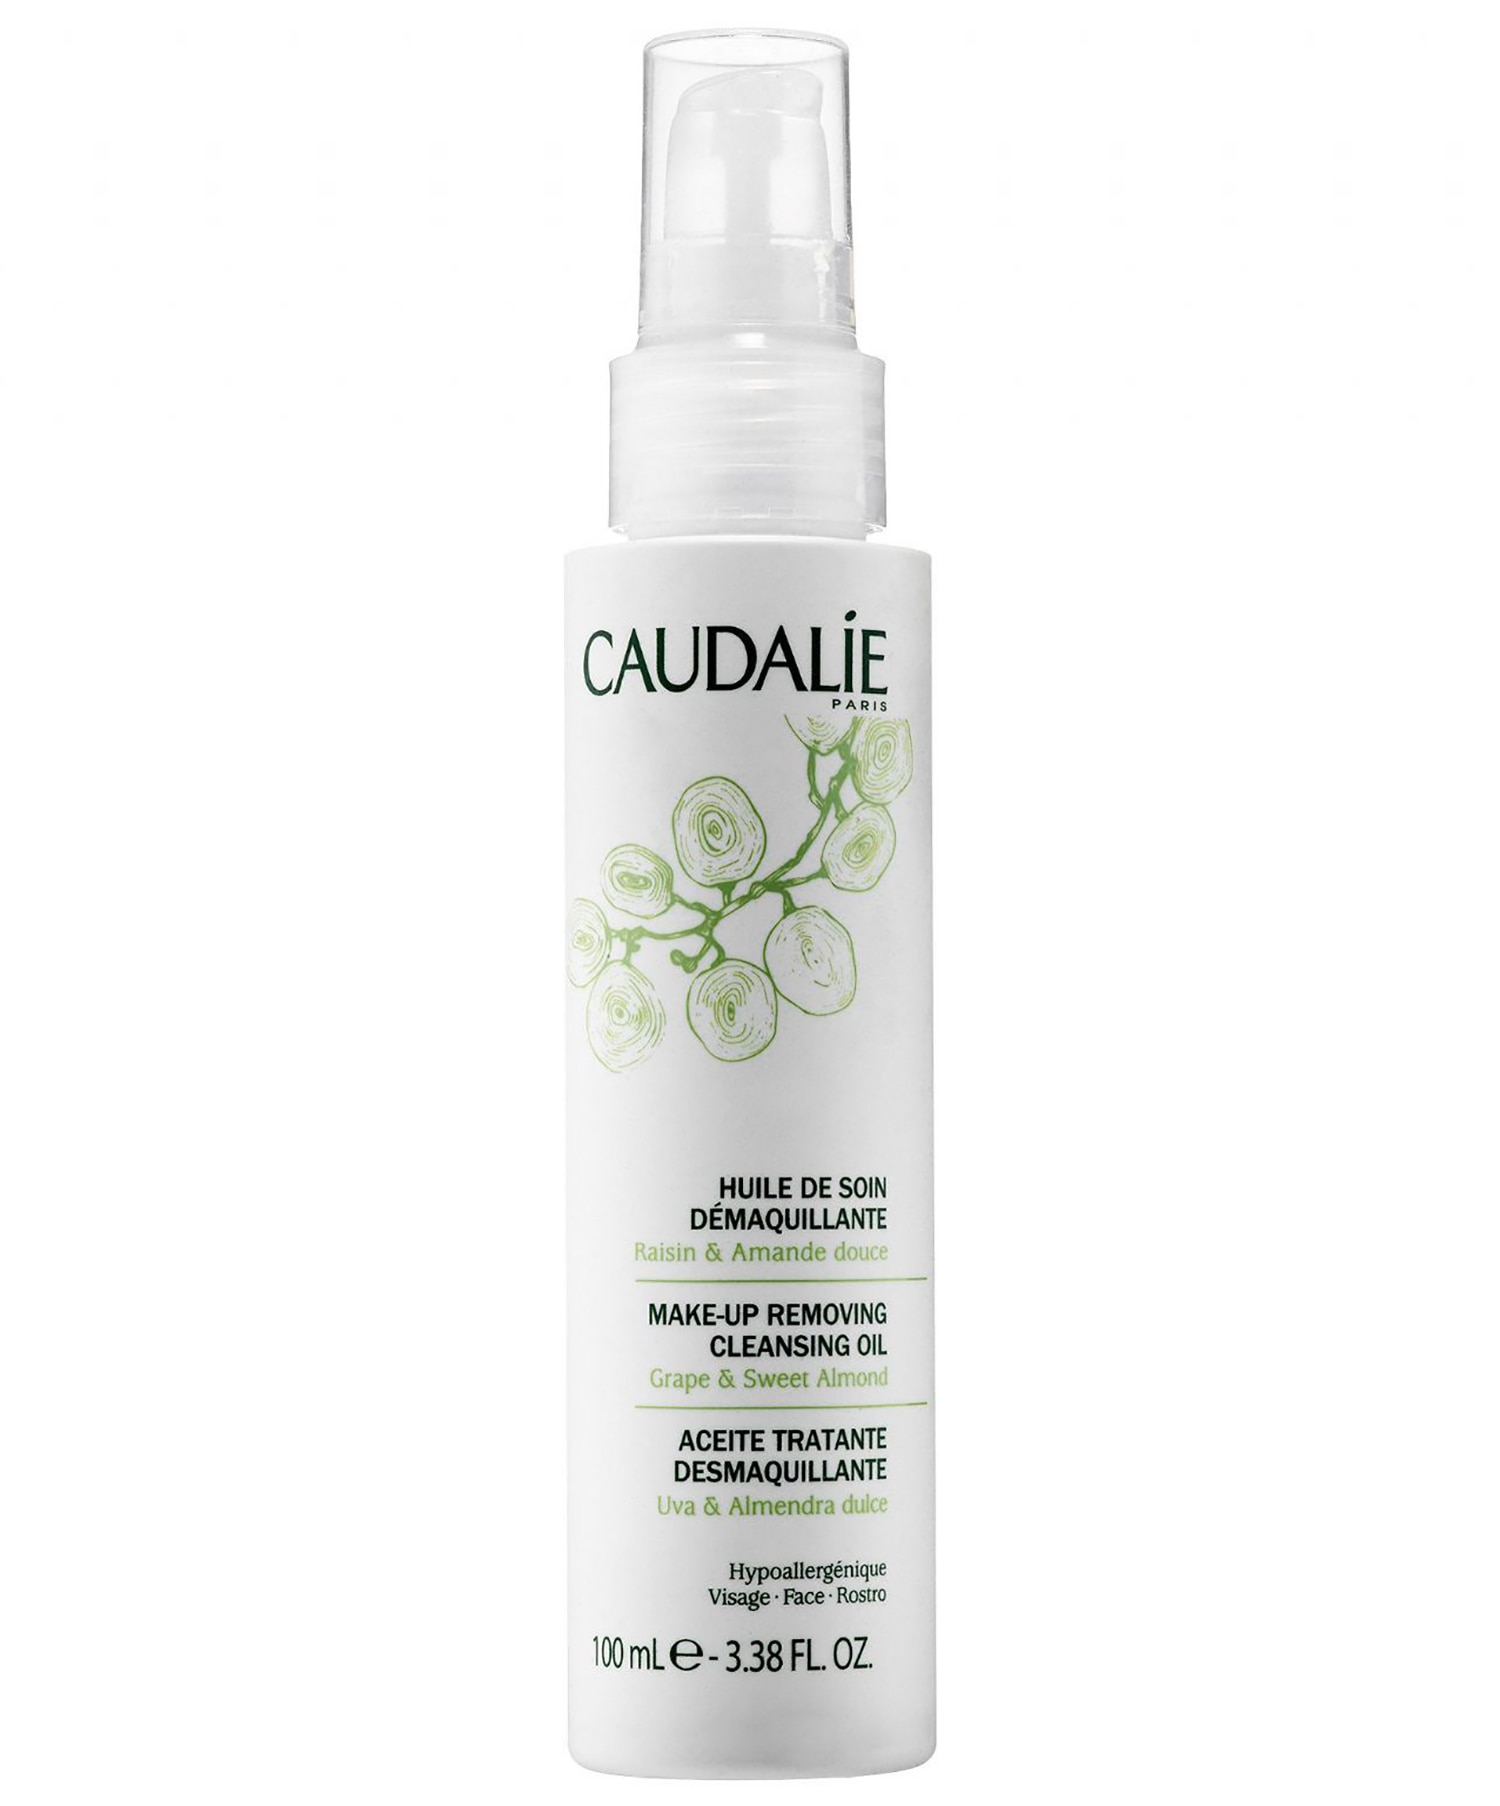 Caudalie Makeup Removing Cleansing Oil